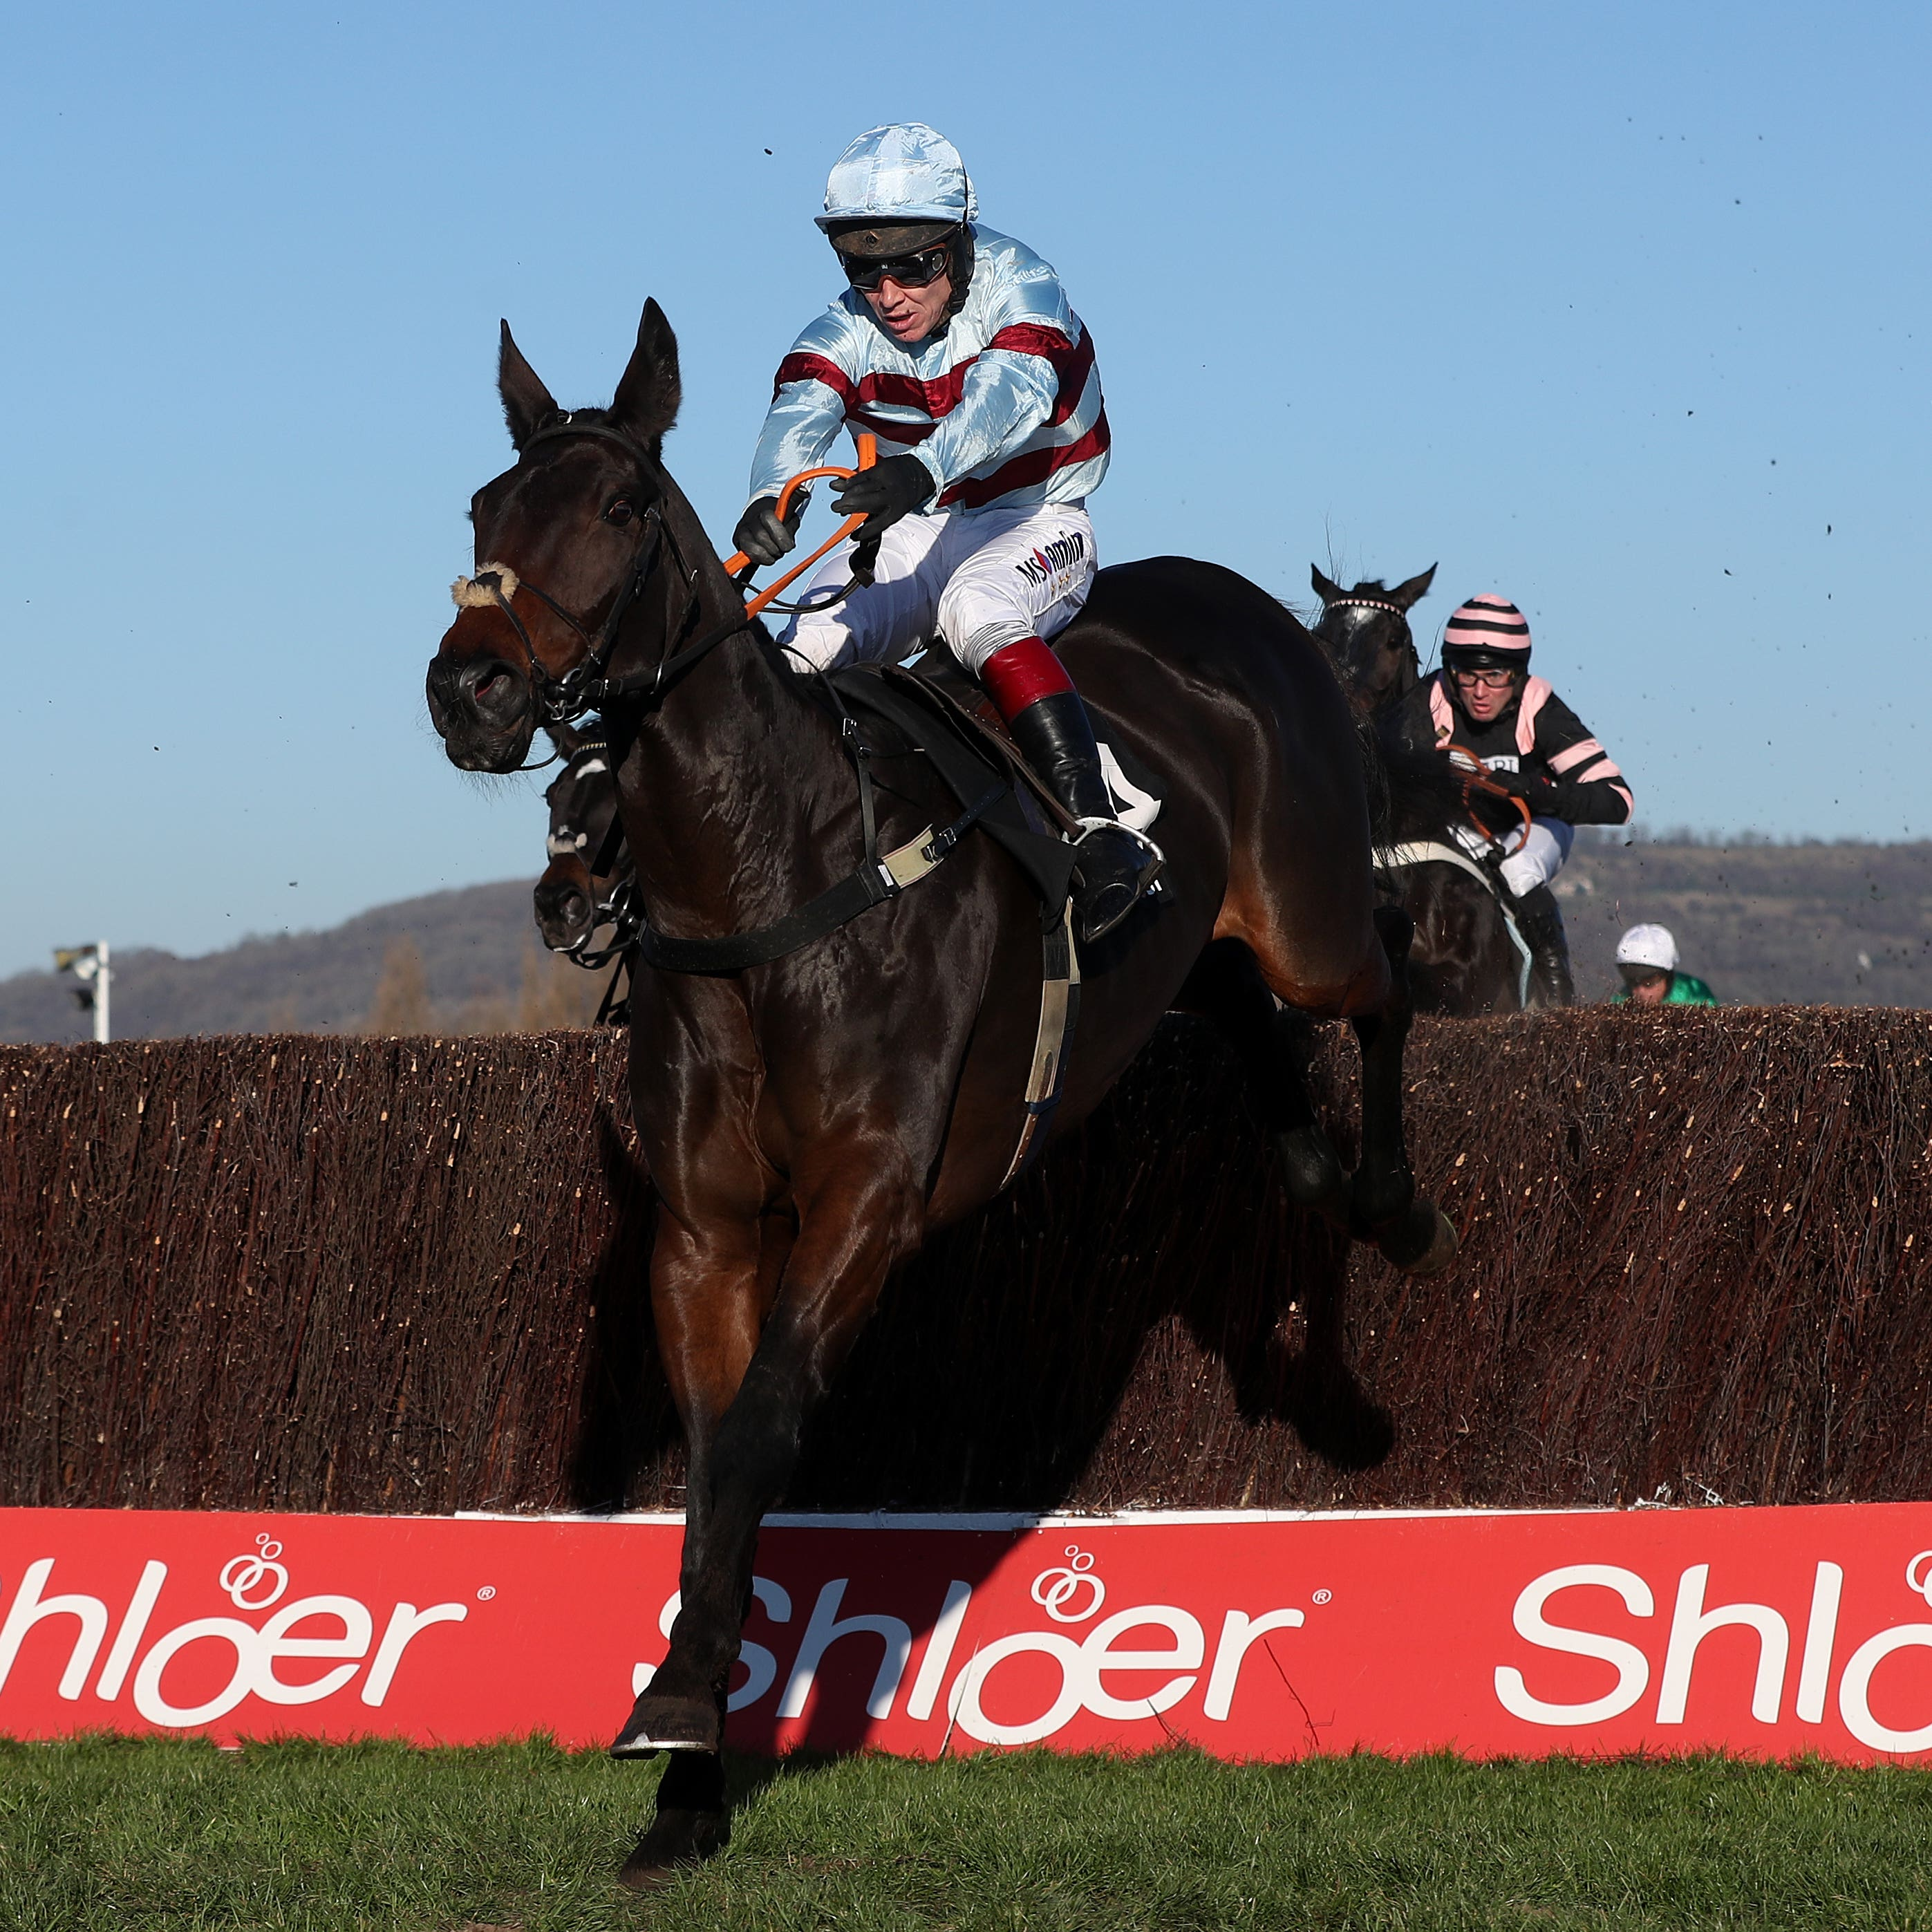 Lalor on his way to winning at Cheltenham in November